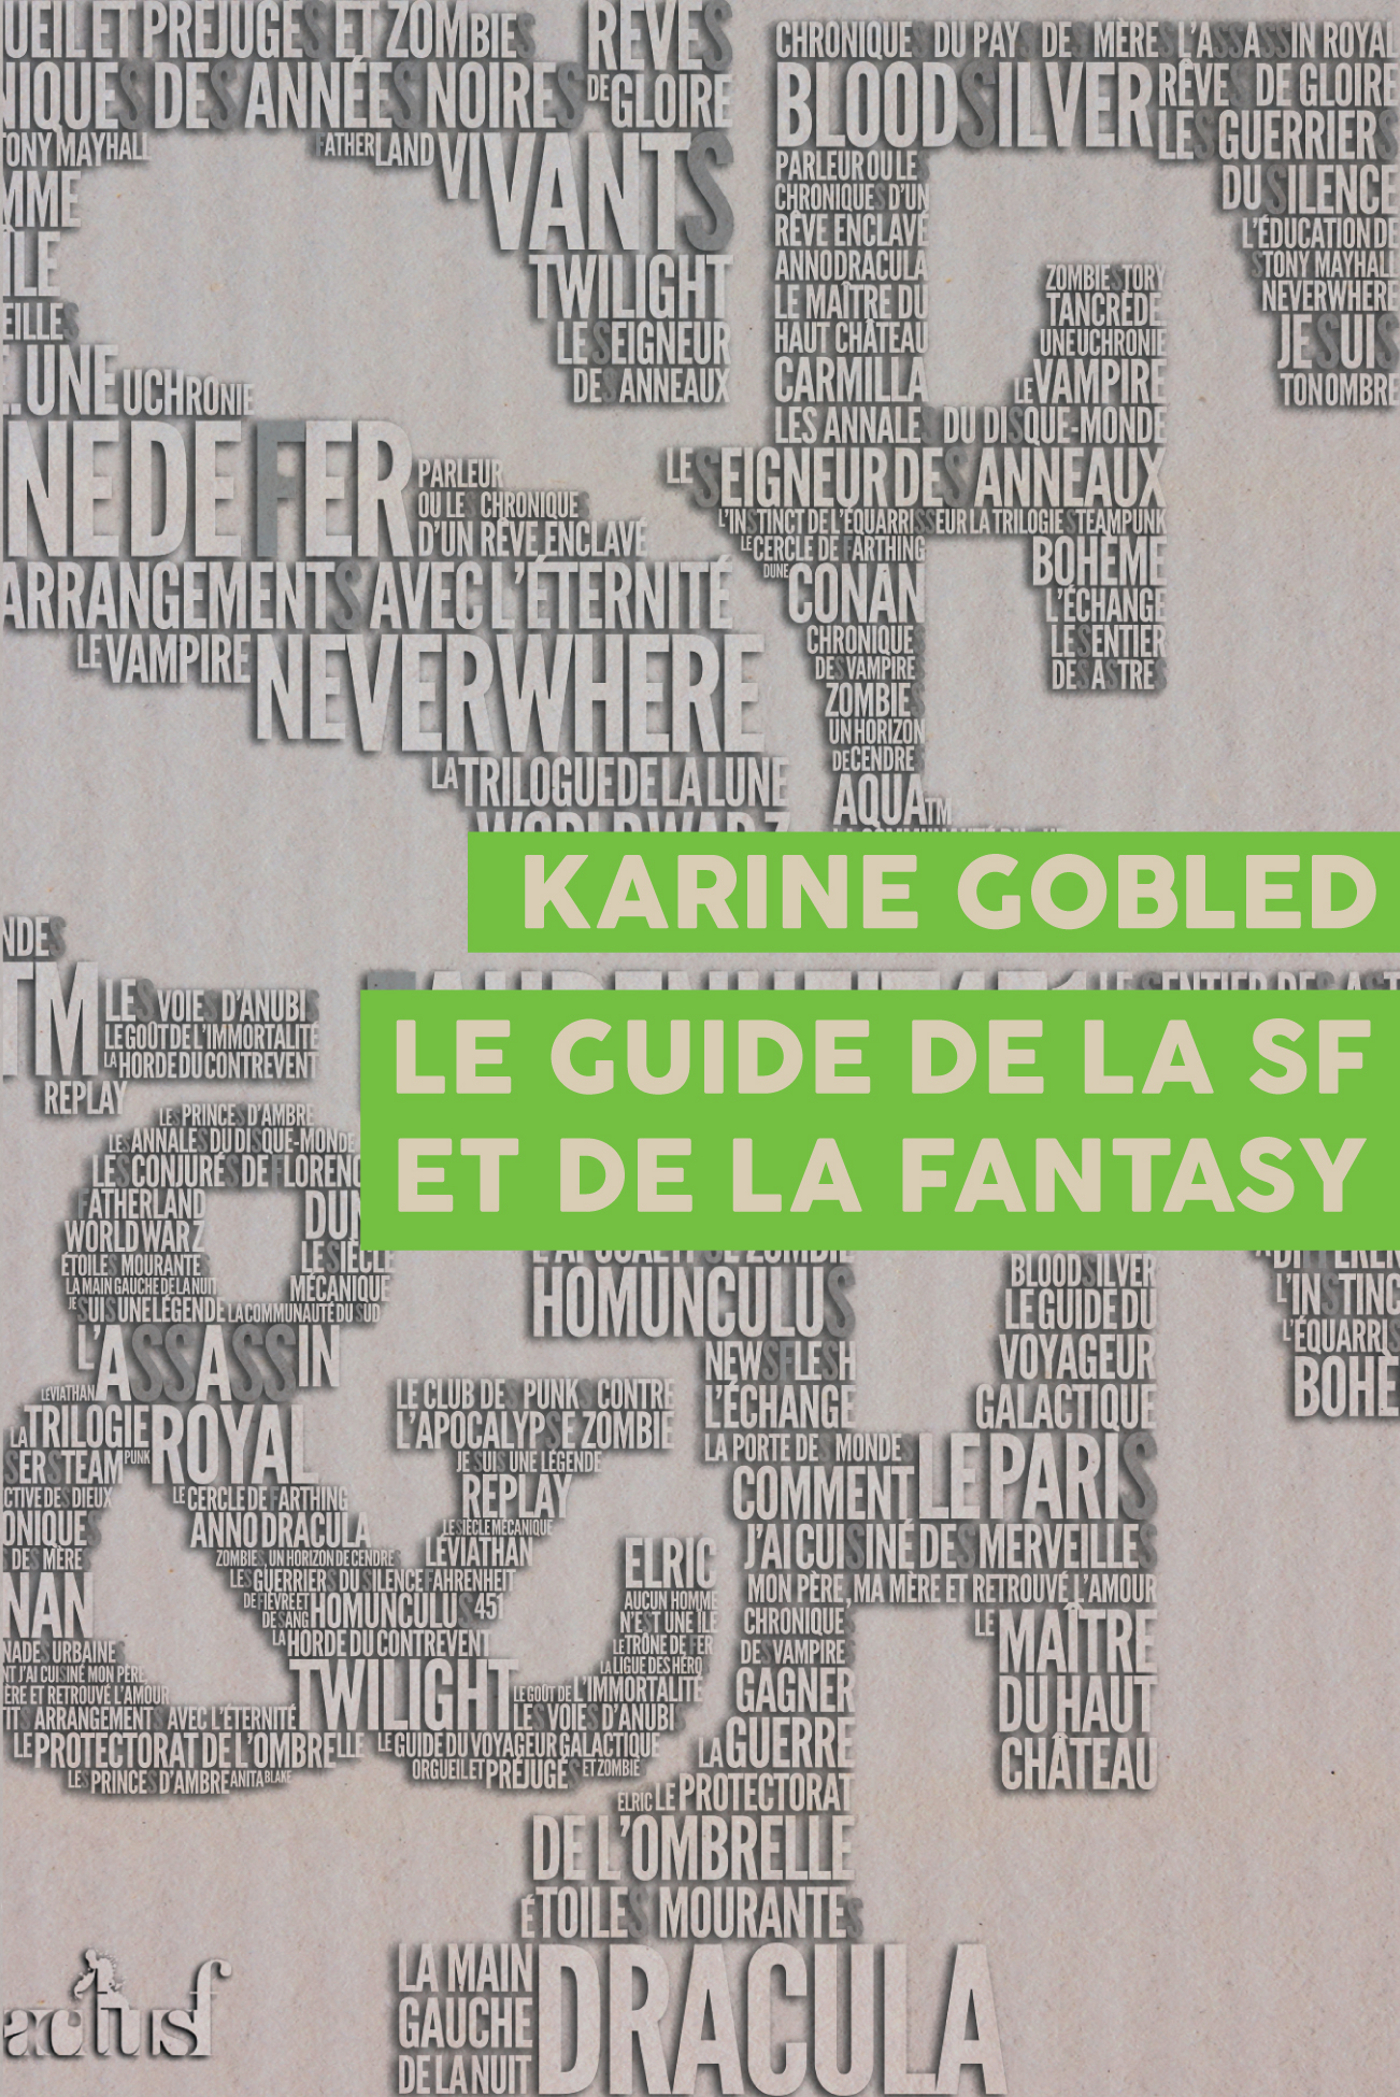 Le Guide de la Science Fiction et de la Fantasy